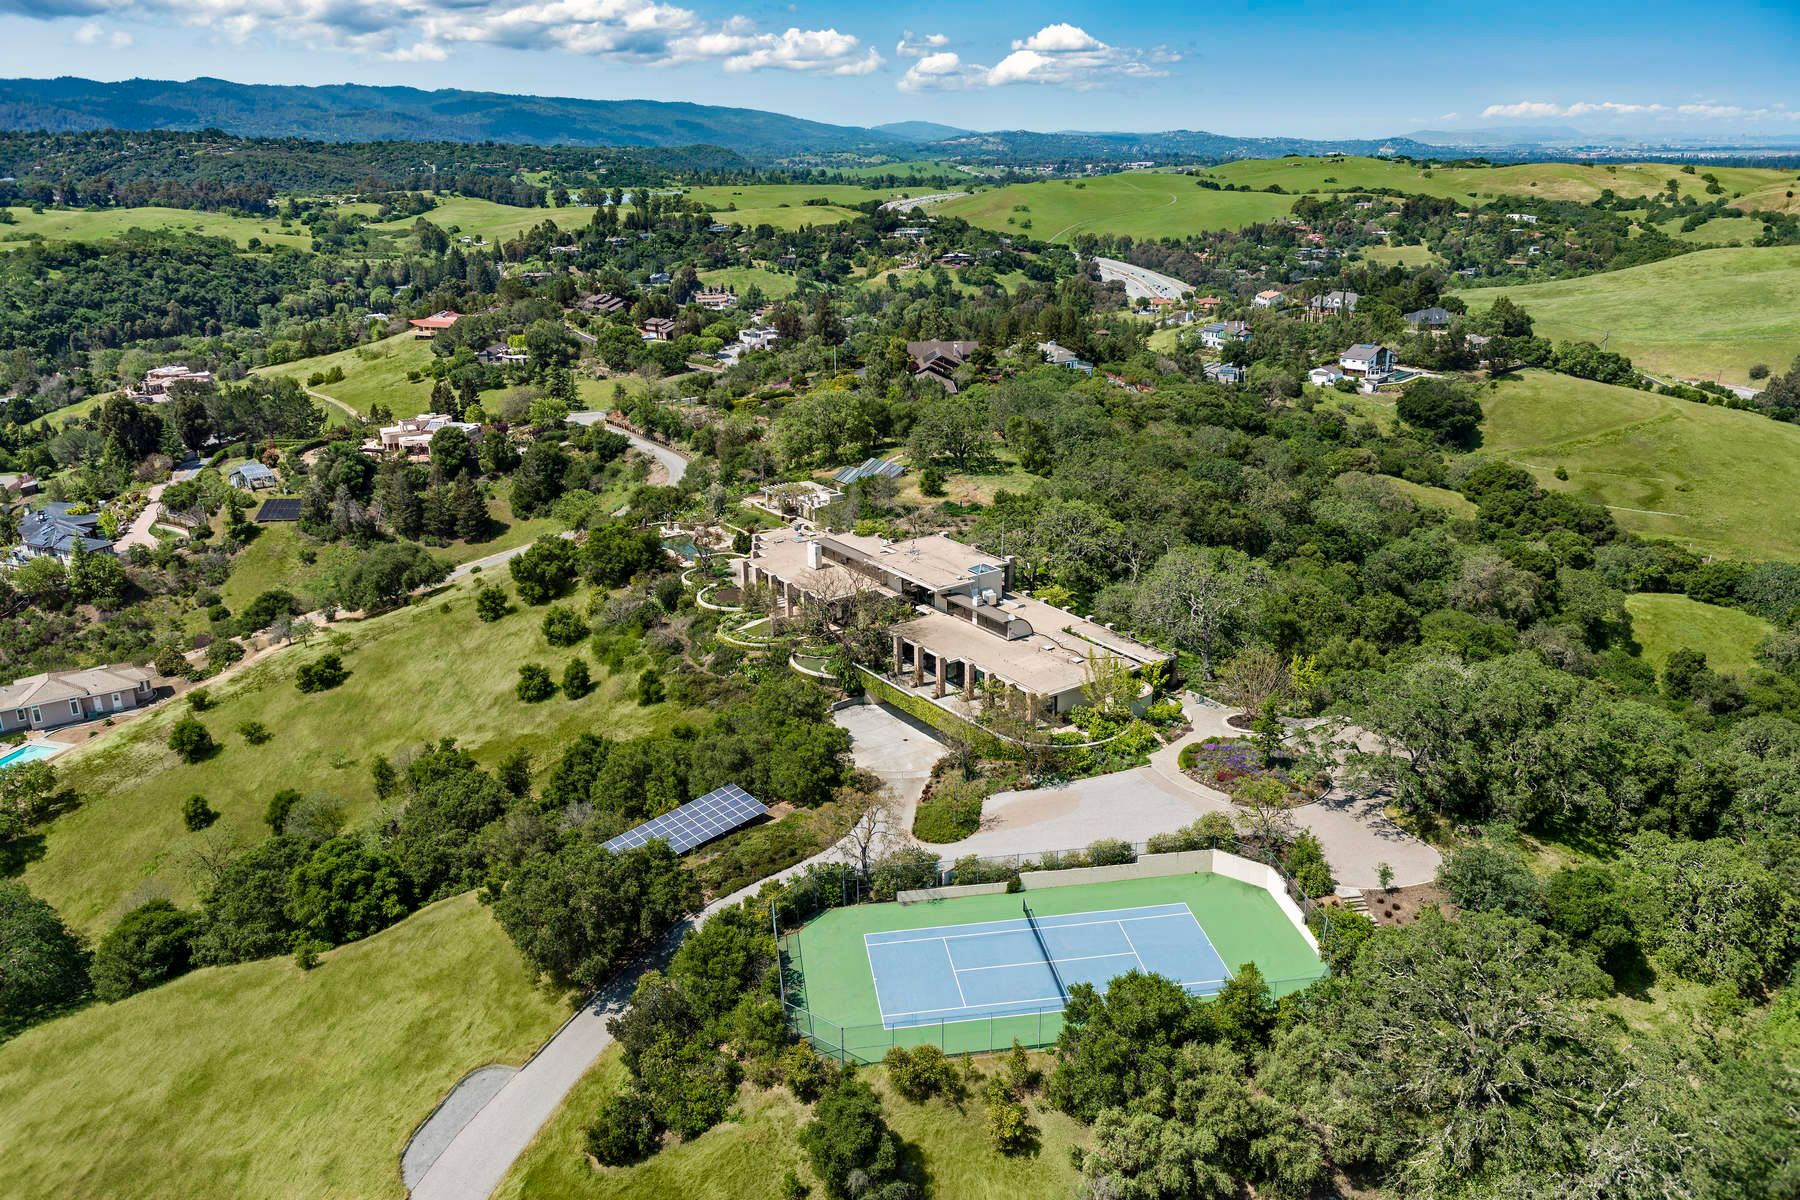 Single Family Home for Active at Approx. 48 Acres - Los Altos Hills 28011 Elena Rd Los Altos Hills, California 94022 United States